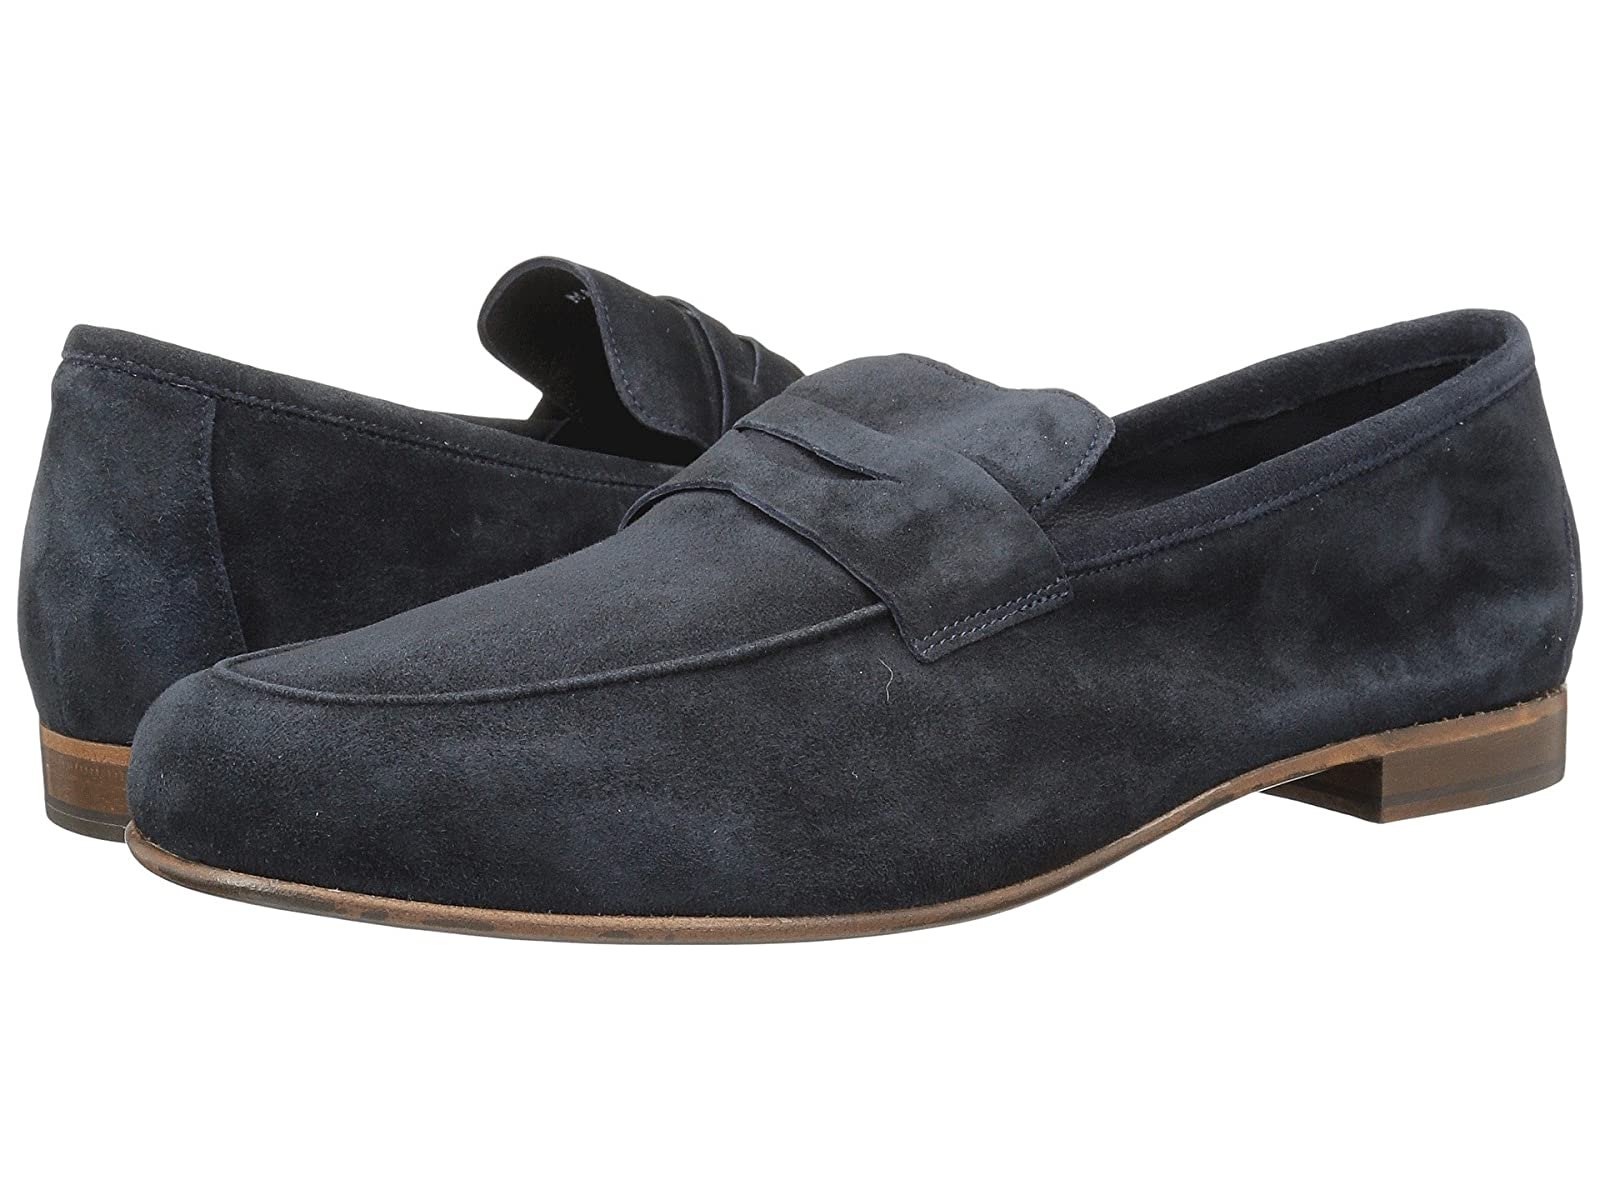 Massimo Matteo Suede Penny LoaferAtmospheric grades have affordable shoes